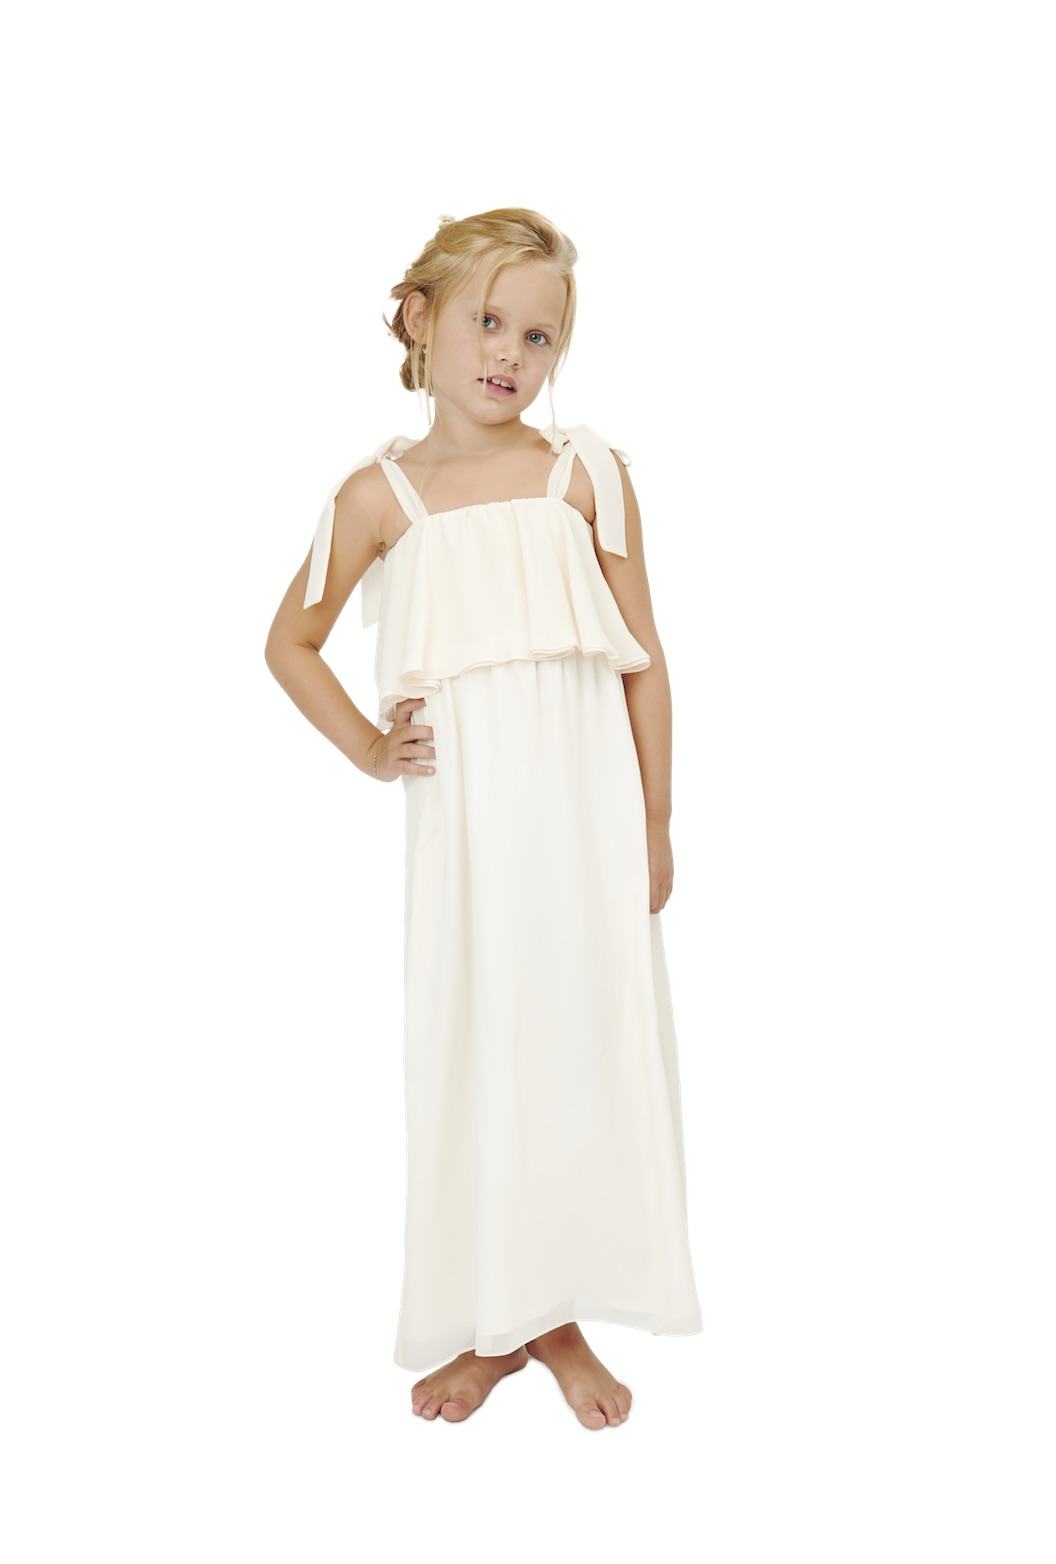 Savannah flower girl dress by Joanna August Babes of the Nile in ivory